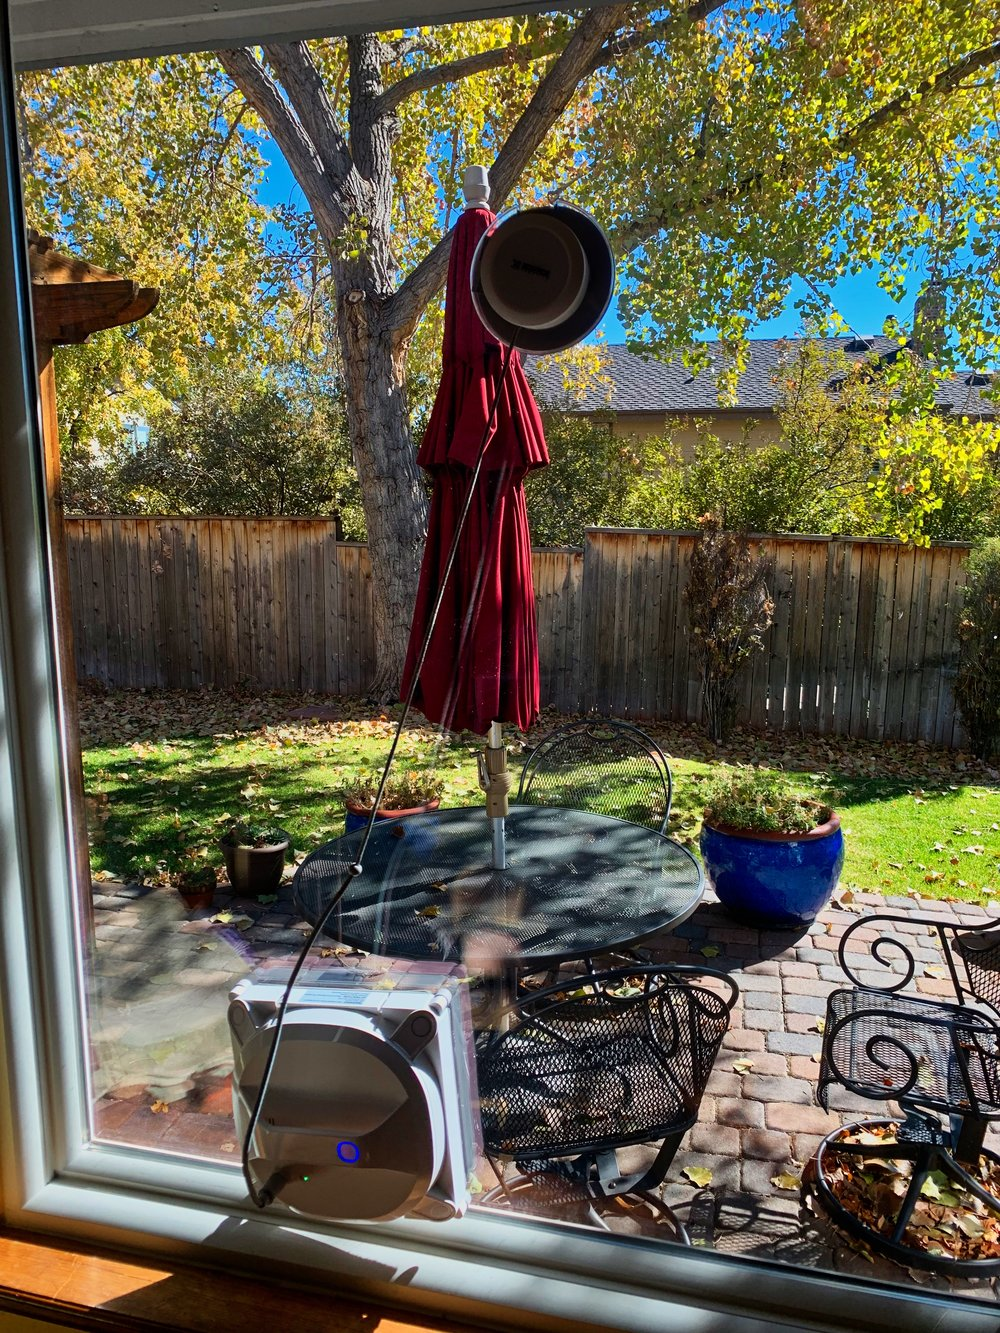 Don't let the clear fall day fool you; this window is actually quite streaky after a cleaning by the Winbot X. Photo ©2018, Steven Sande